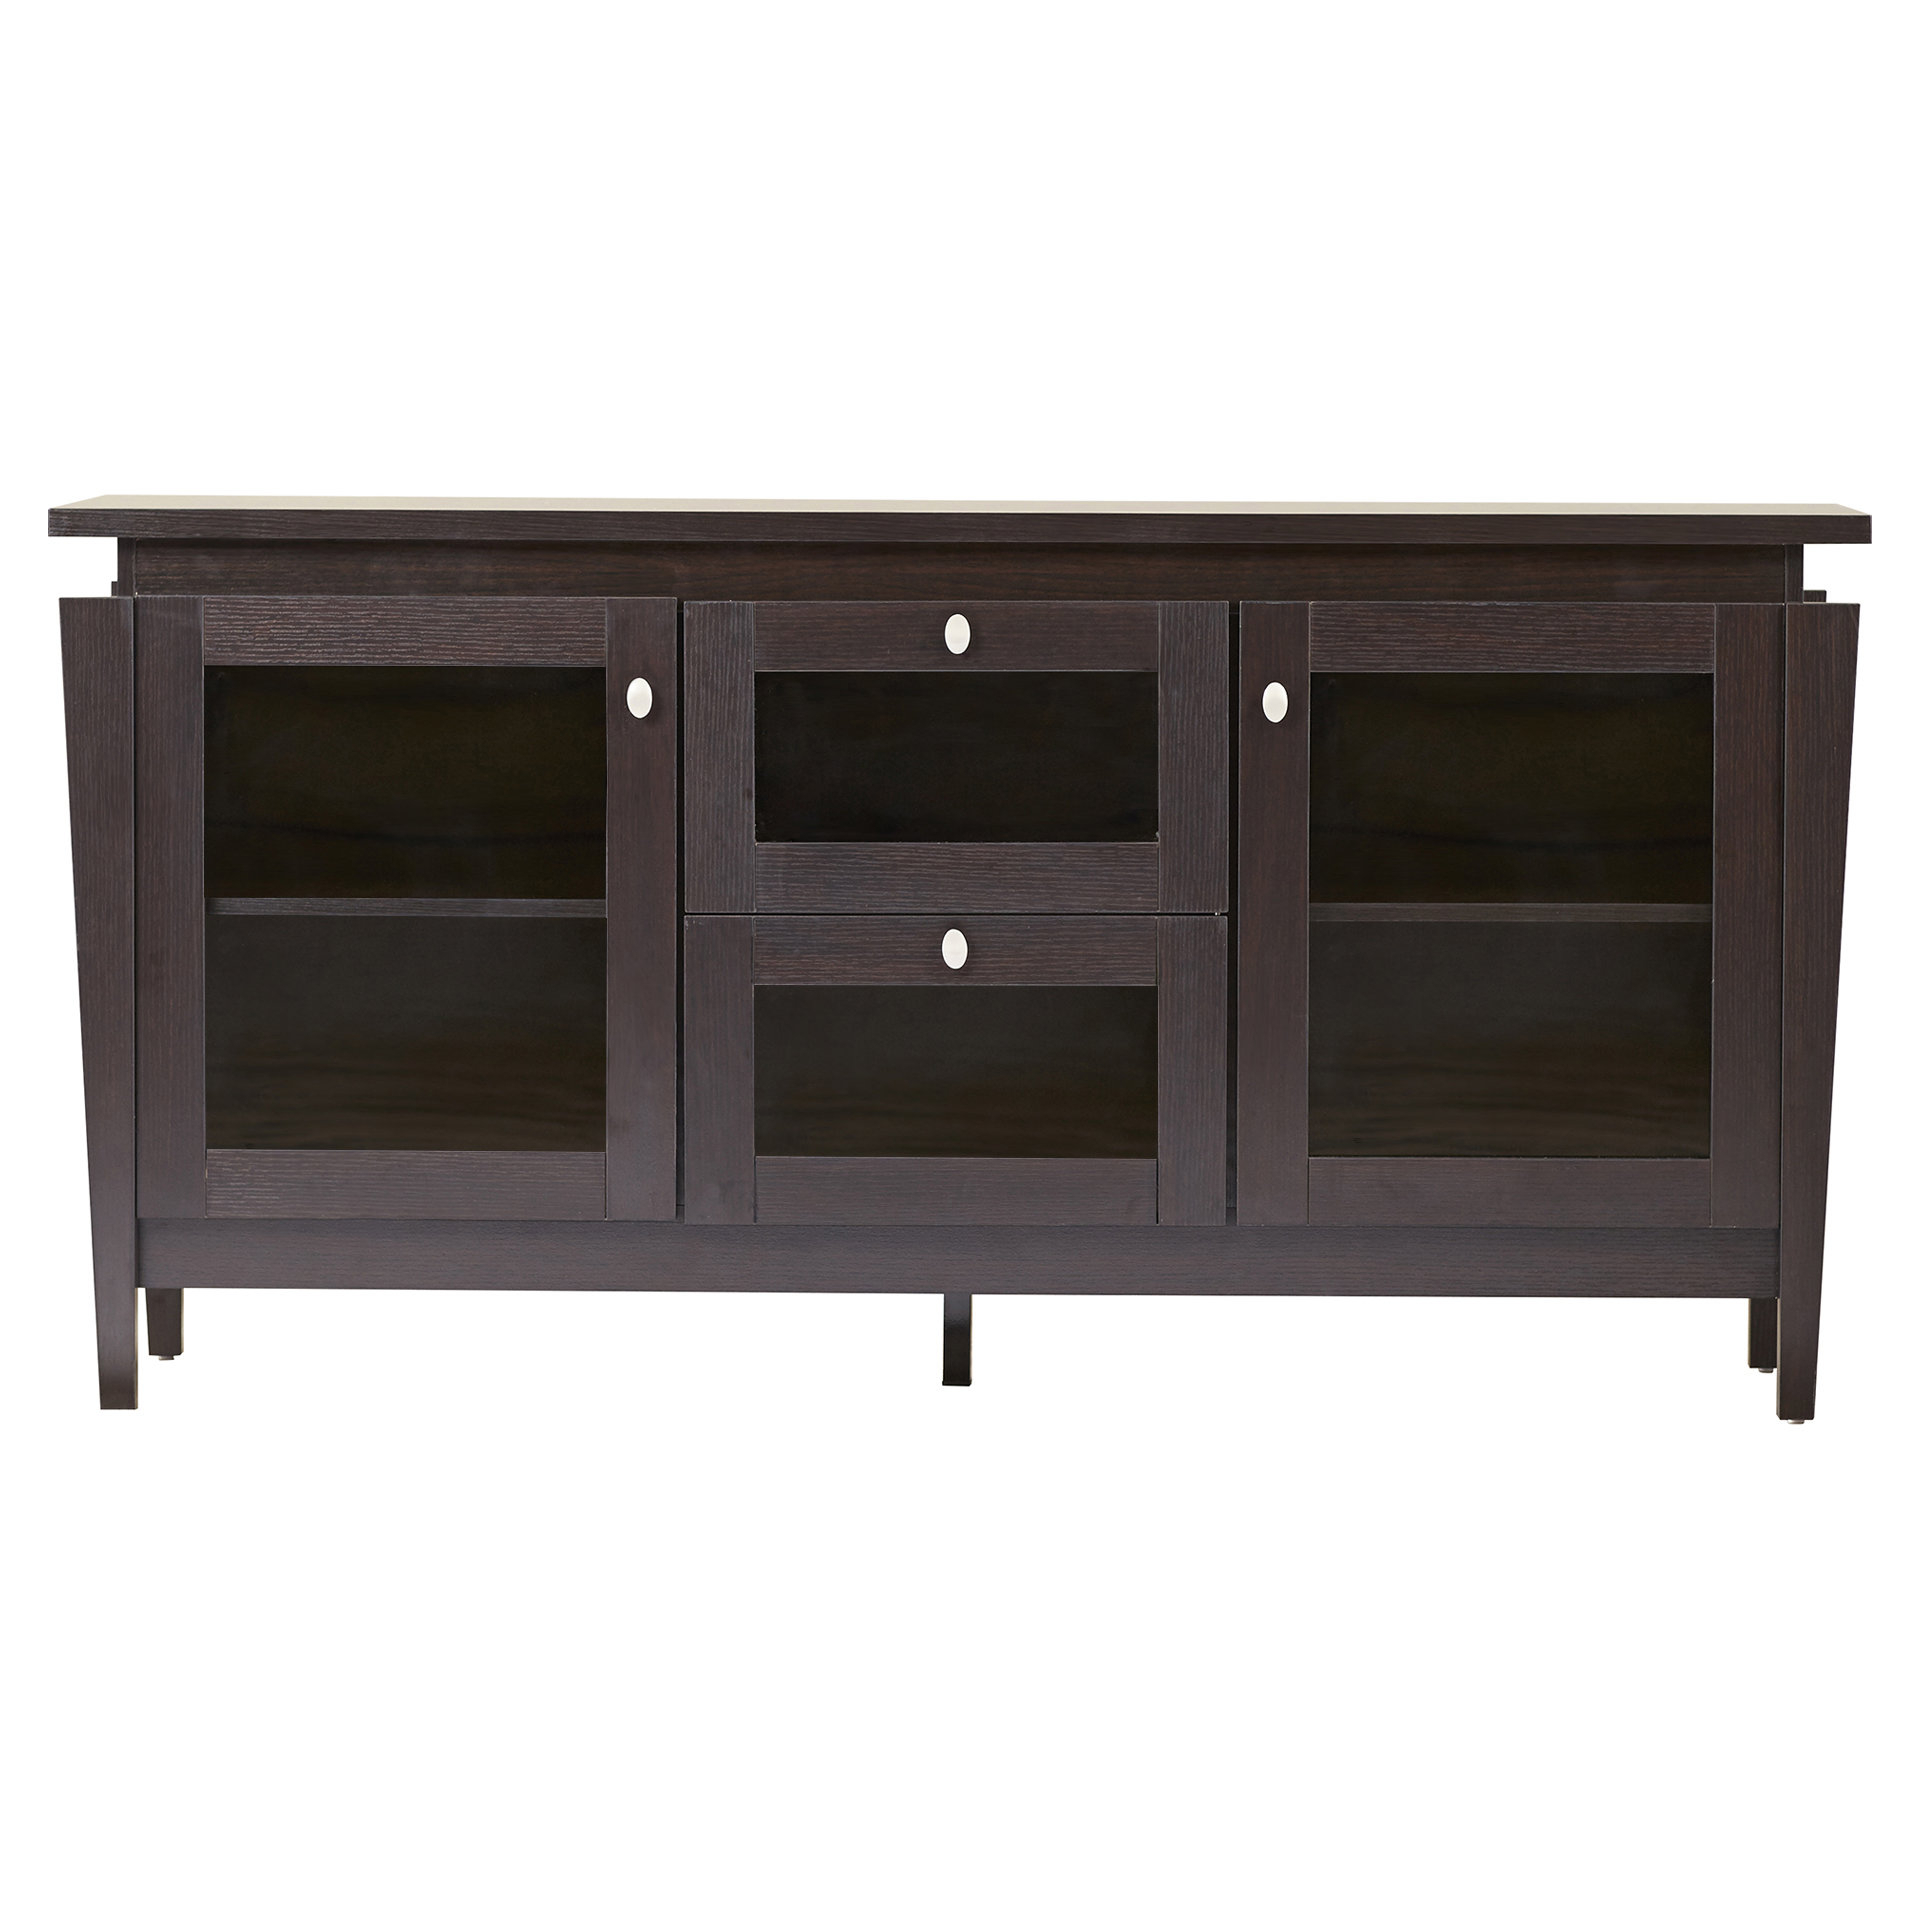 Tate Sideboard In Longley Sideboards (View 20 of 20)